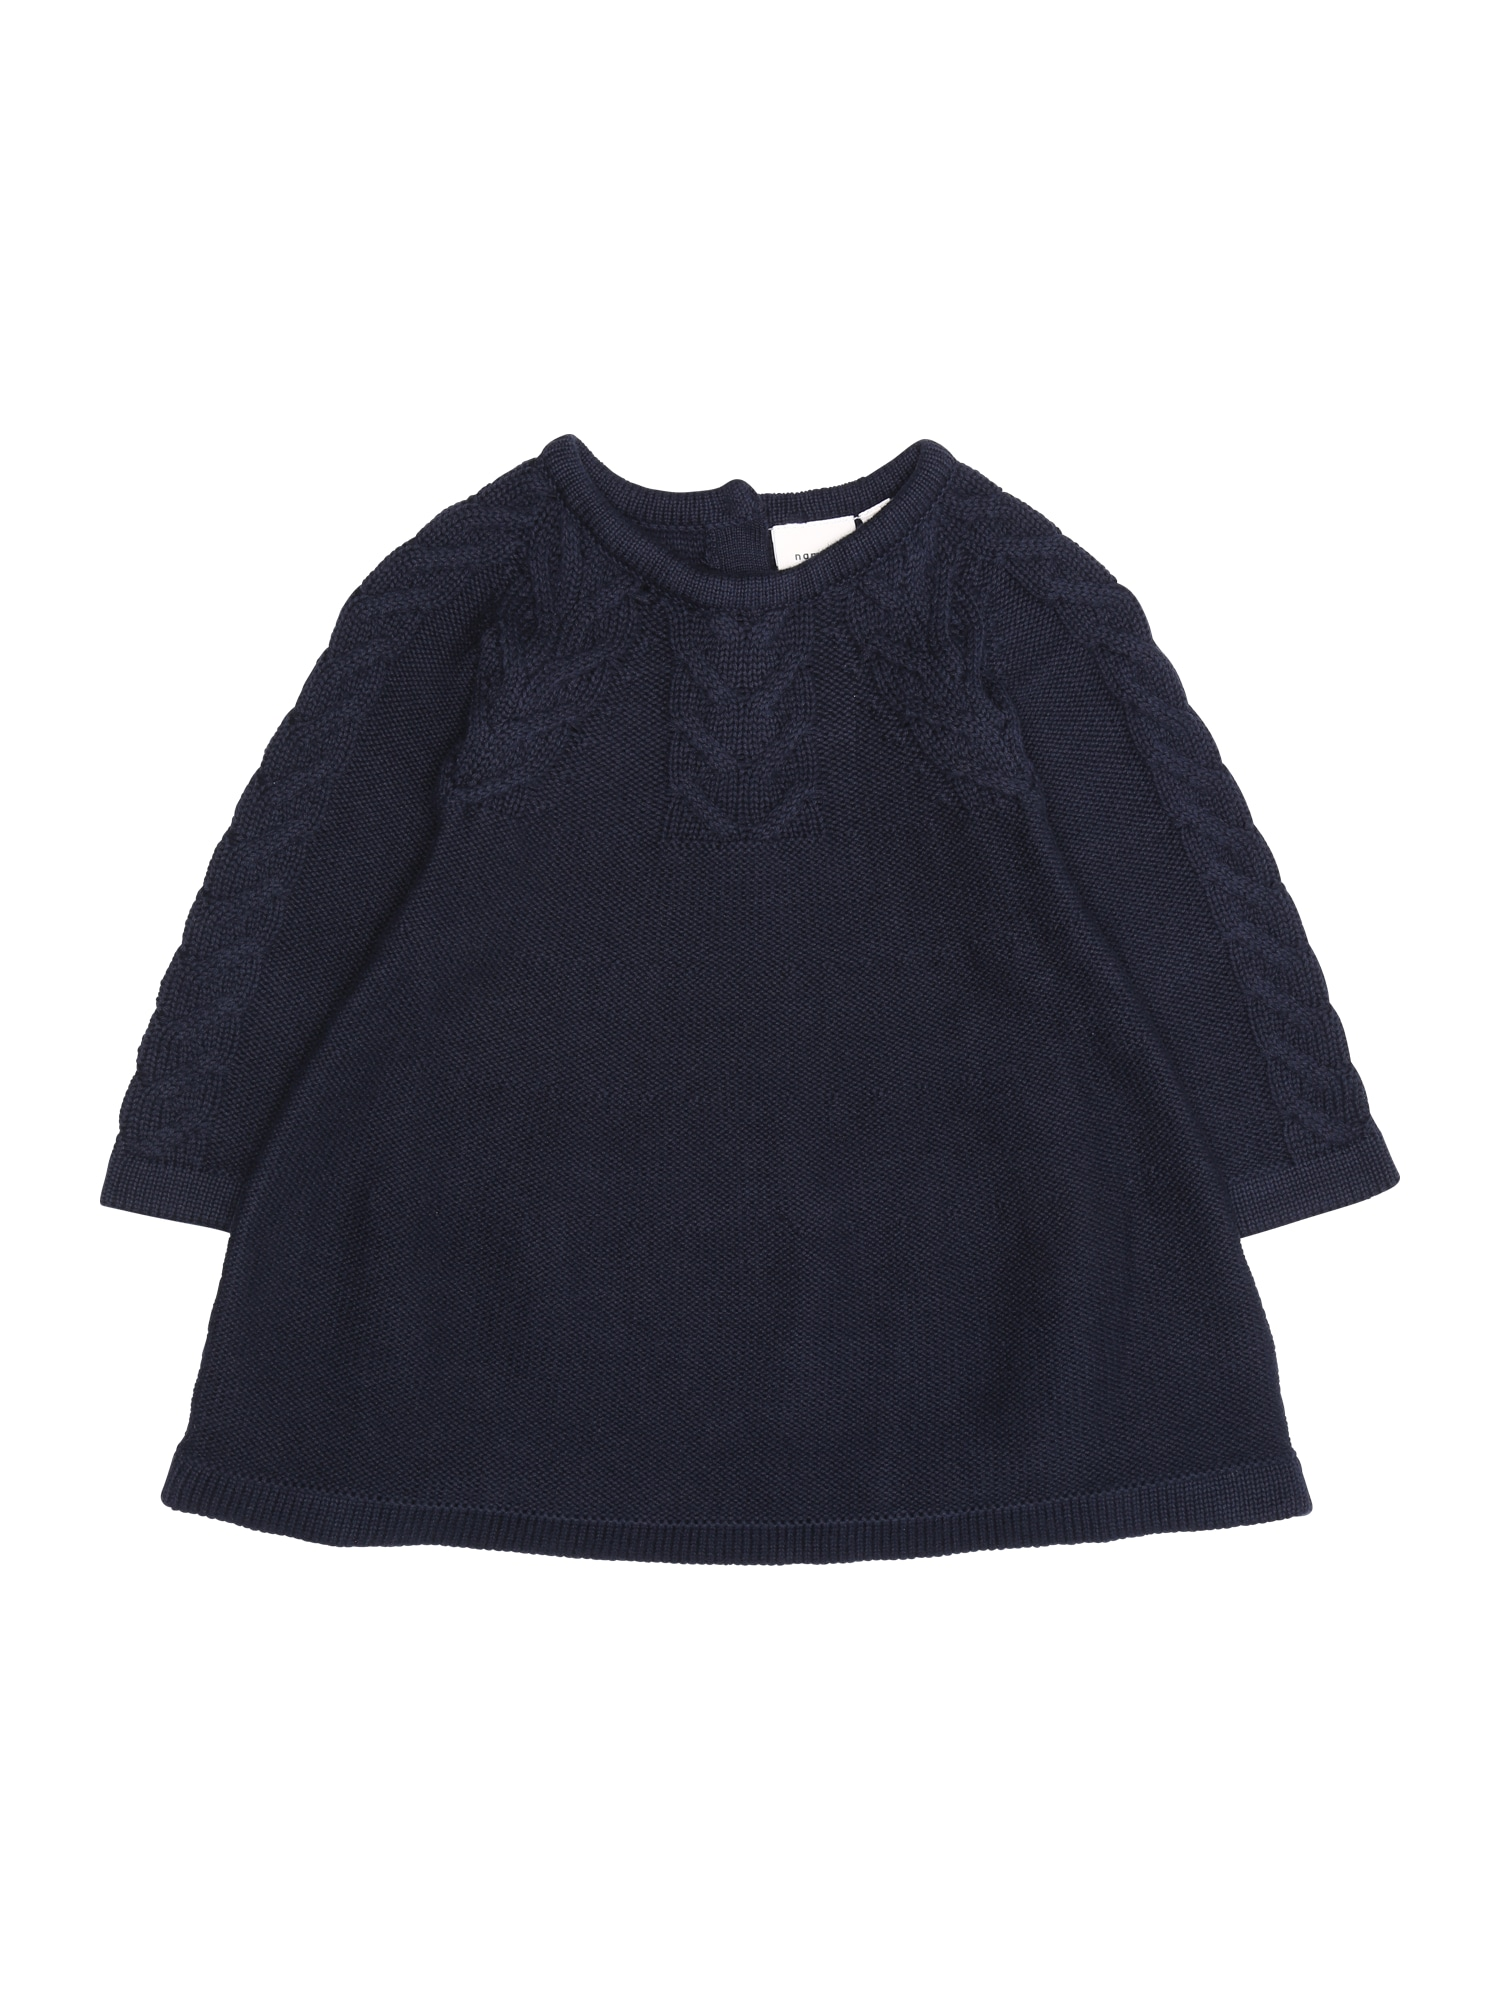 Name it Meisjes Jurk 'NBFOFIA LS KNIT DRESS' donkerblauw